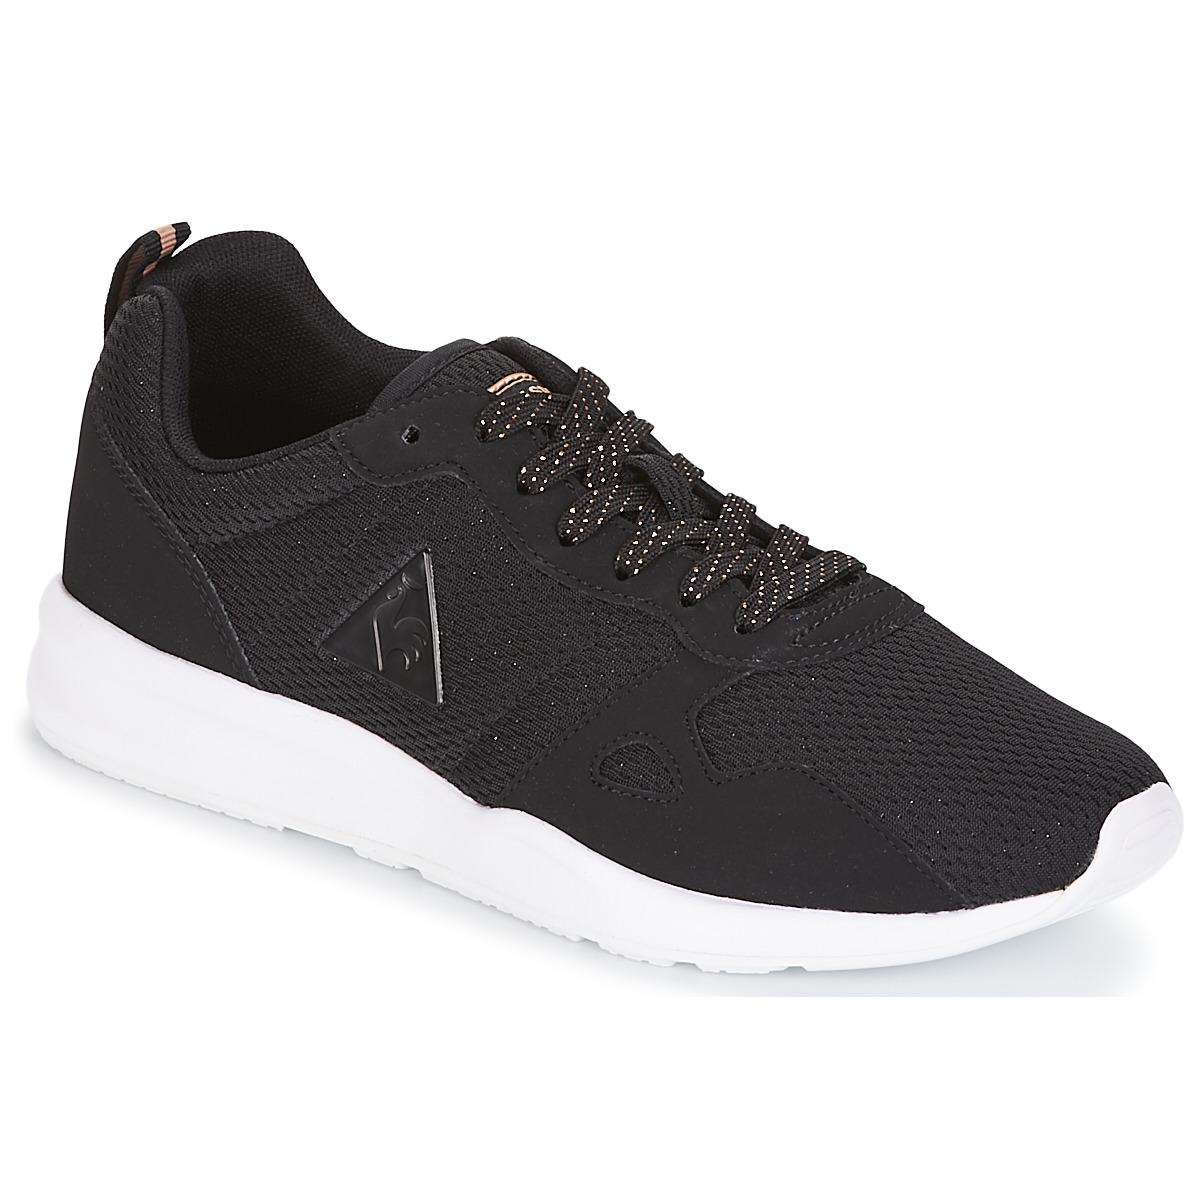 2408bbdf3e7d le-coq-sportif-black-Lcs-R600-W-Metallic-Meshs-Nubuck-Womens-Shoes-trainers -In-Black.jpeg